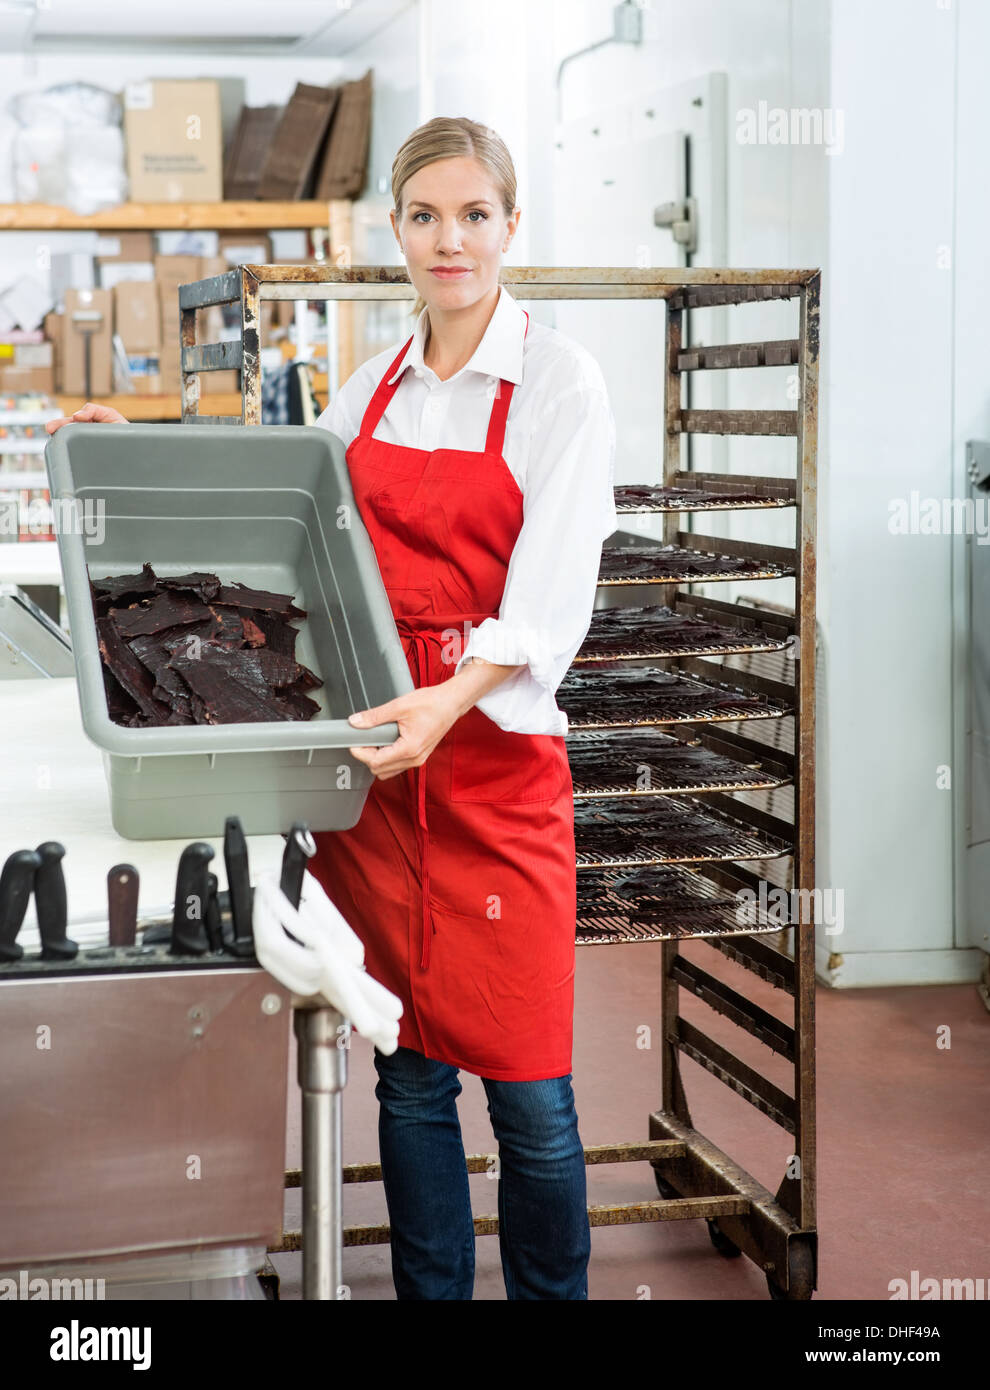 Worker Showing Beef Jerky In Basket At Butcher's Shop Stock Photo